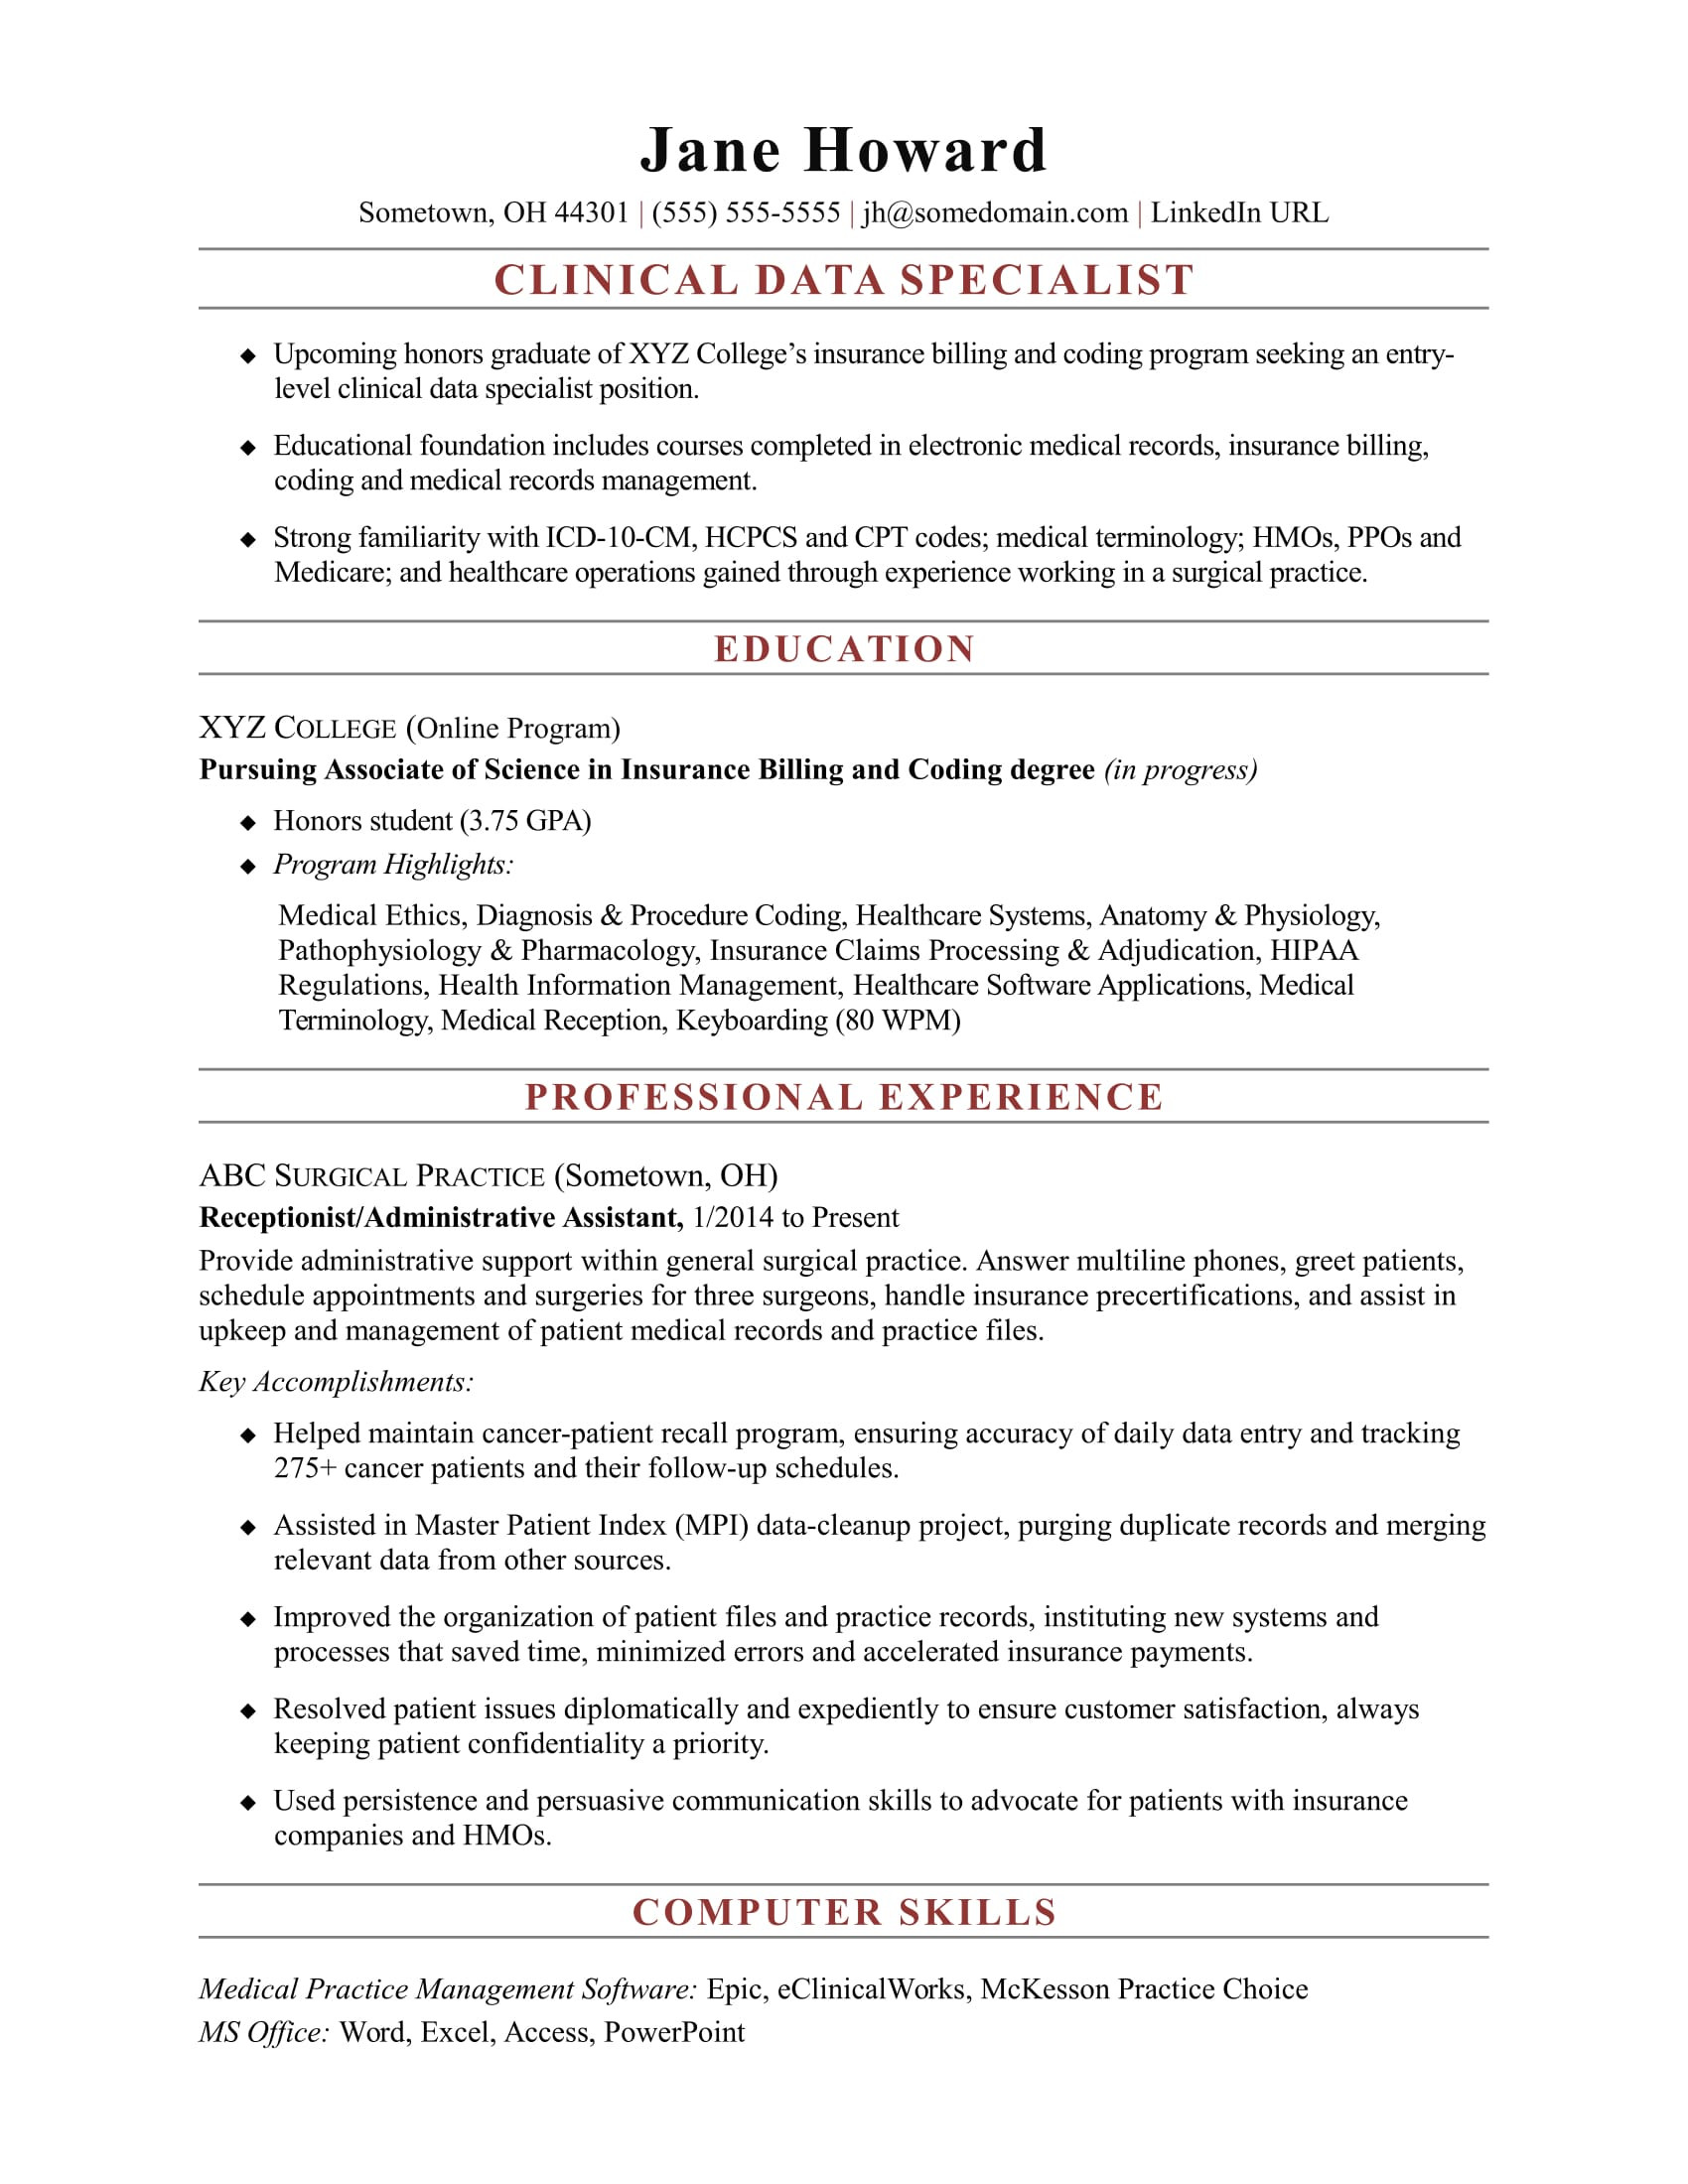 sample resume clinical data specialist entry level